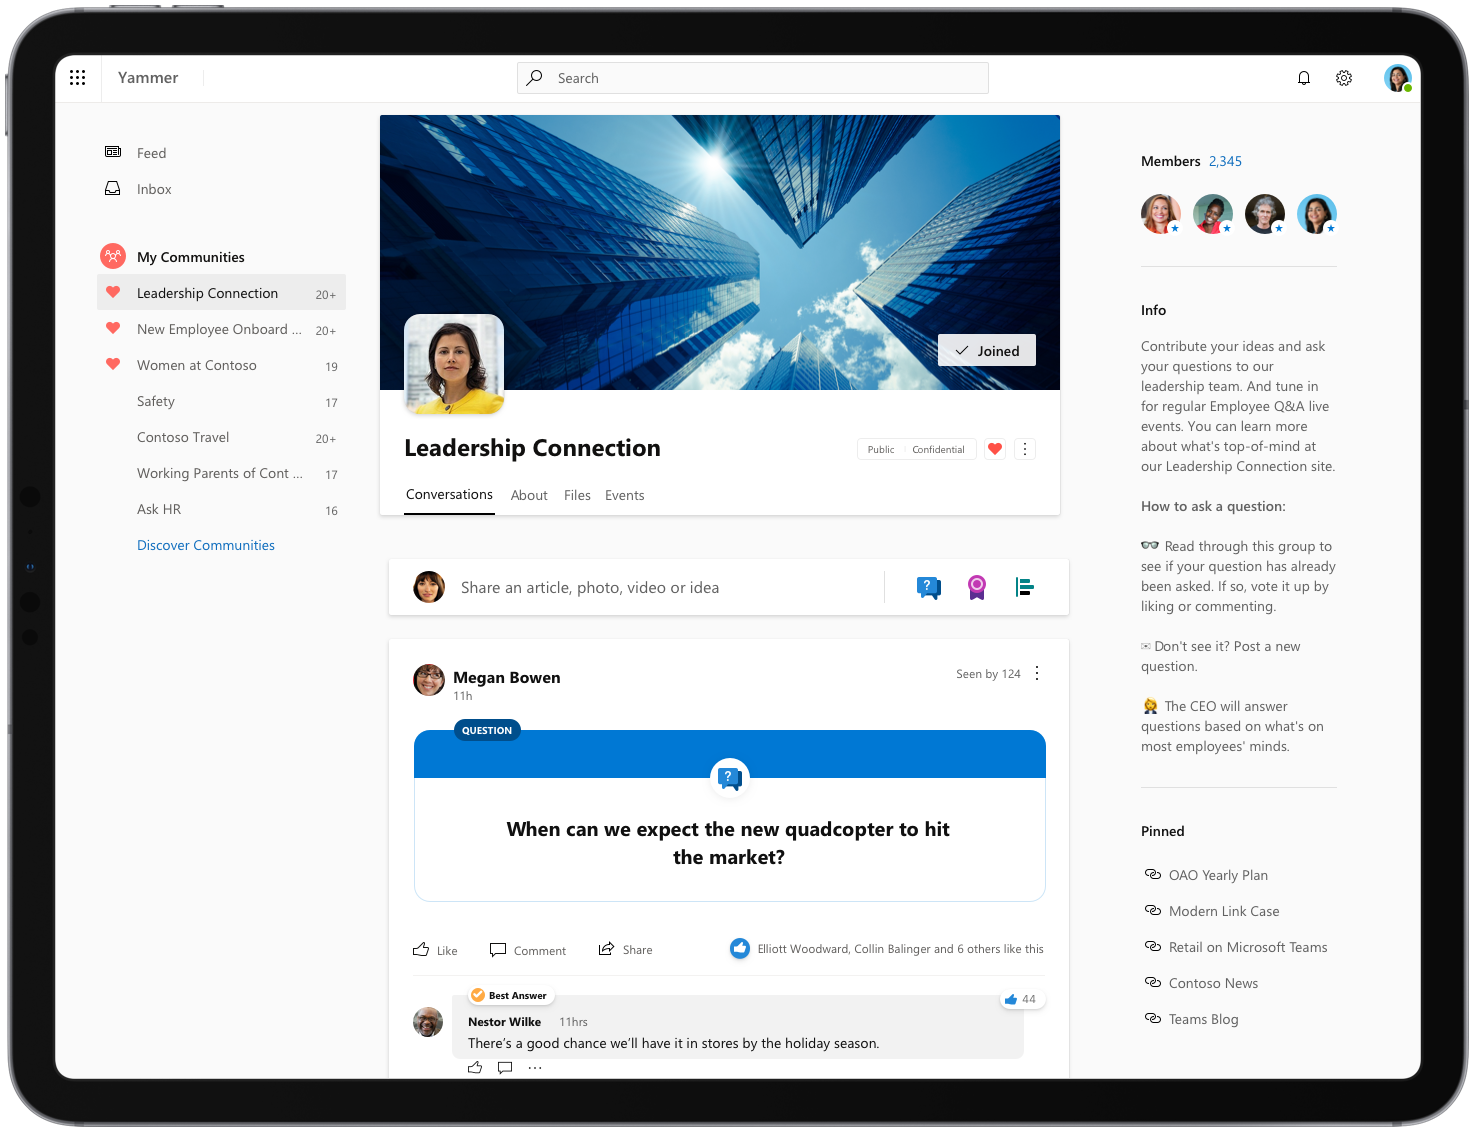 An image of the redesigned Yammer.